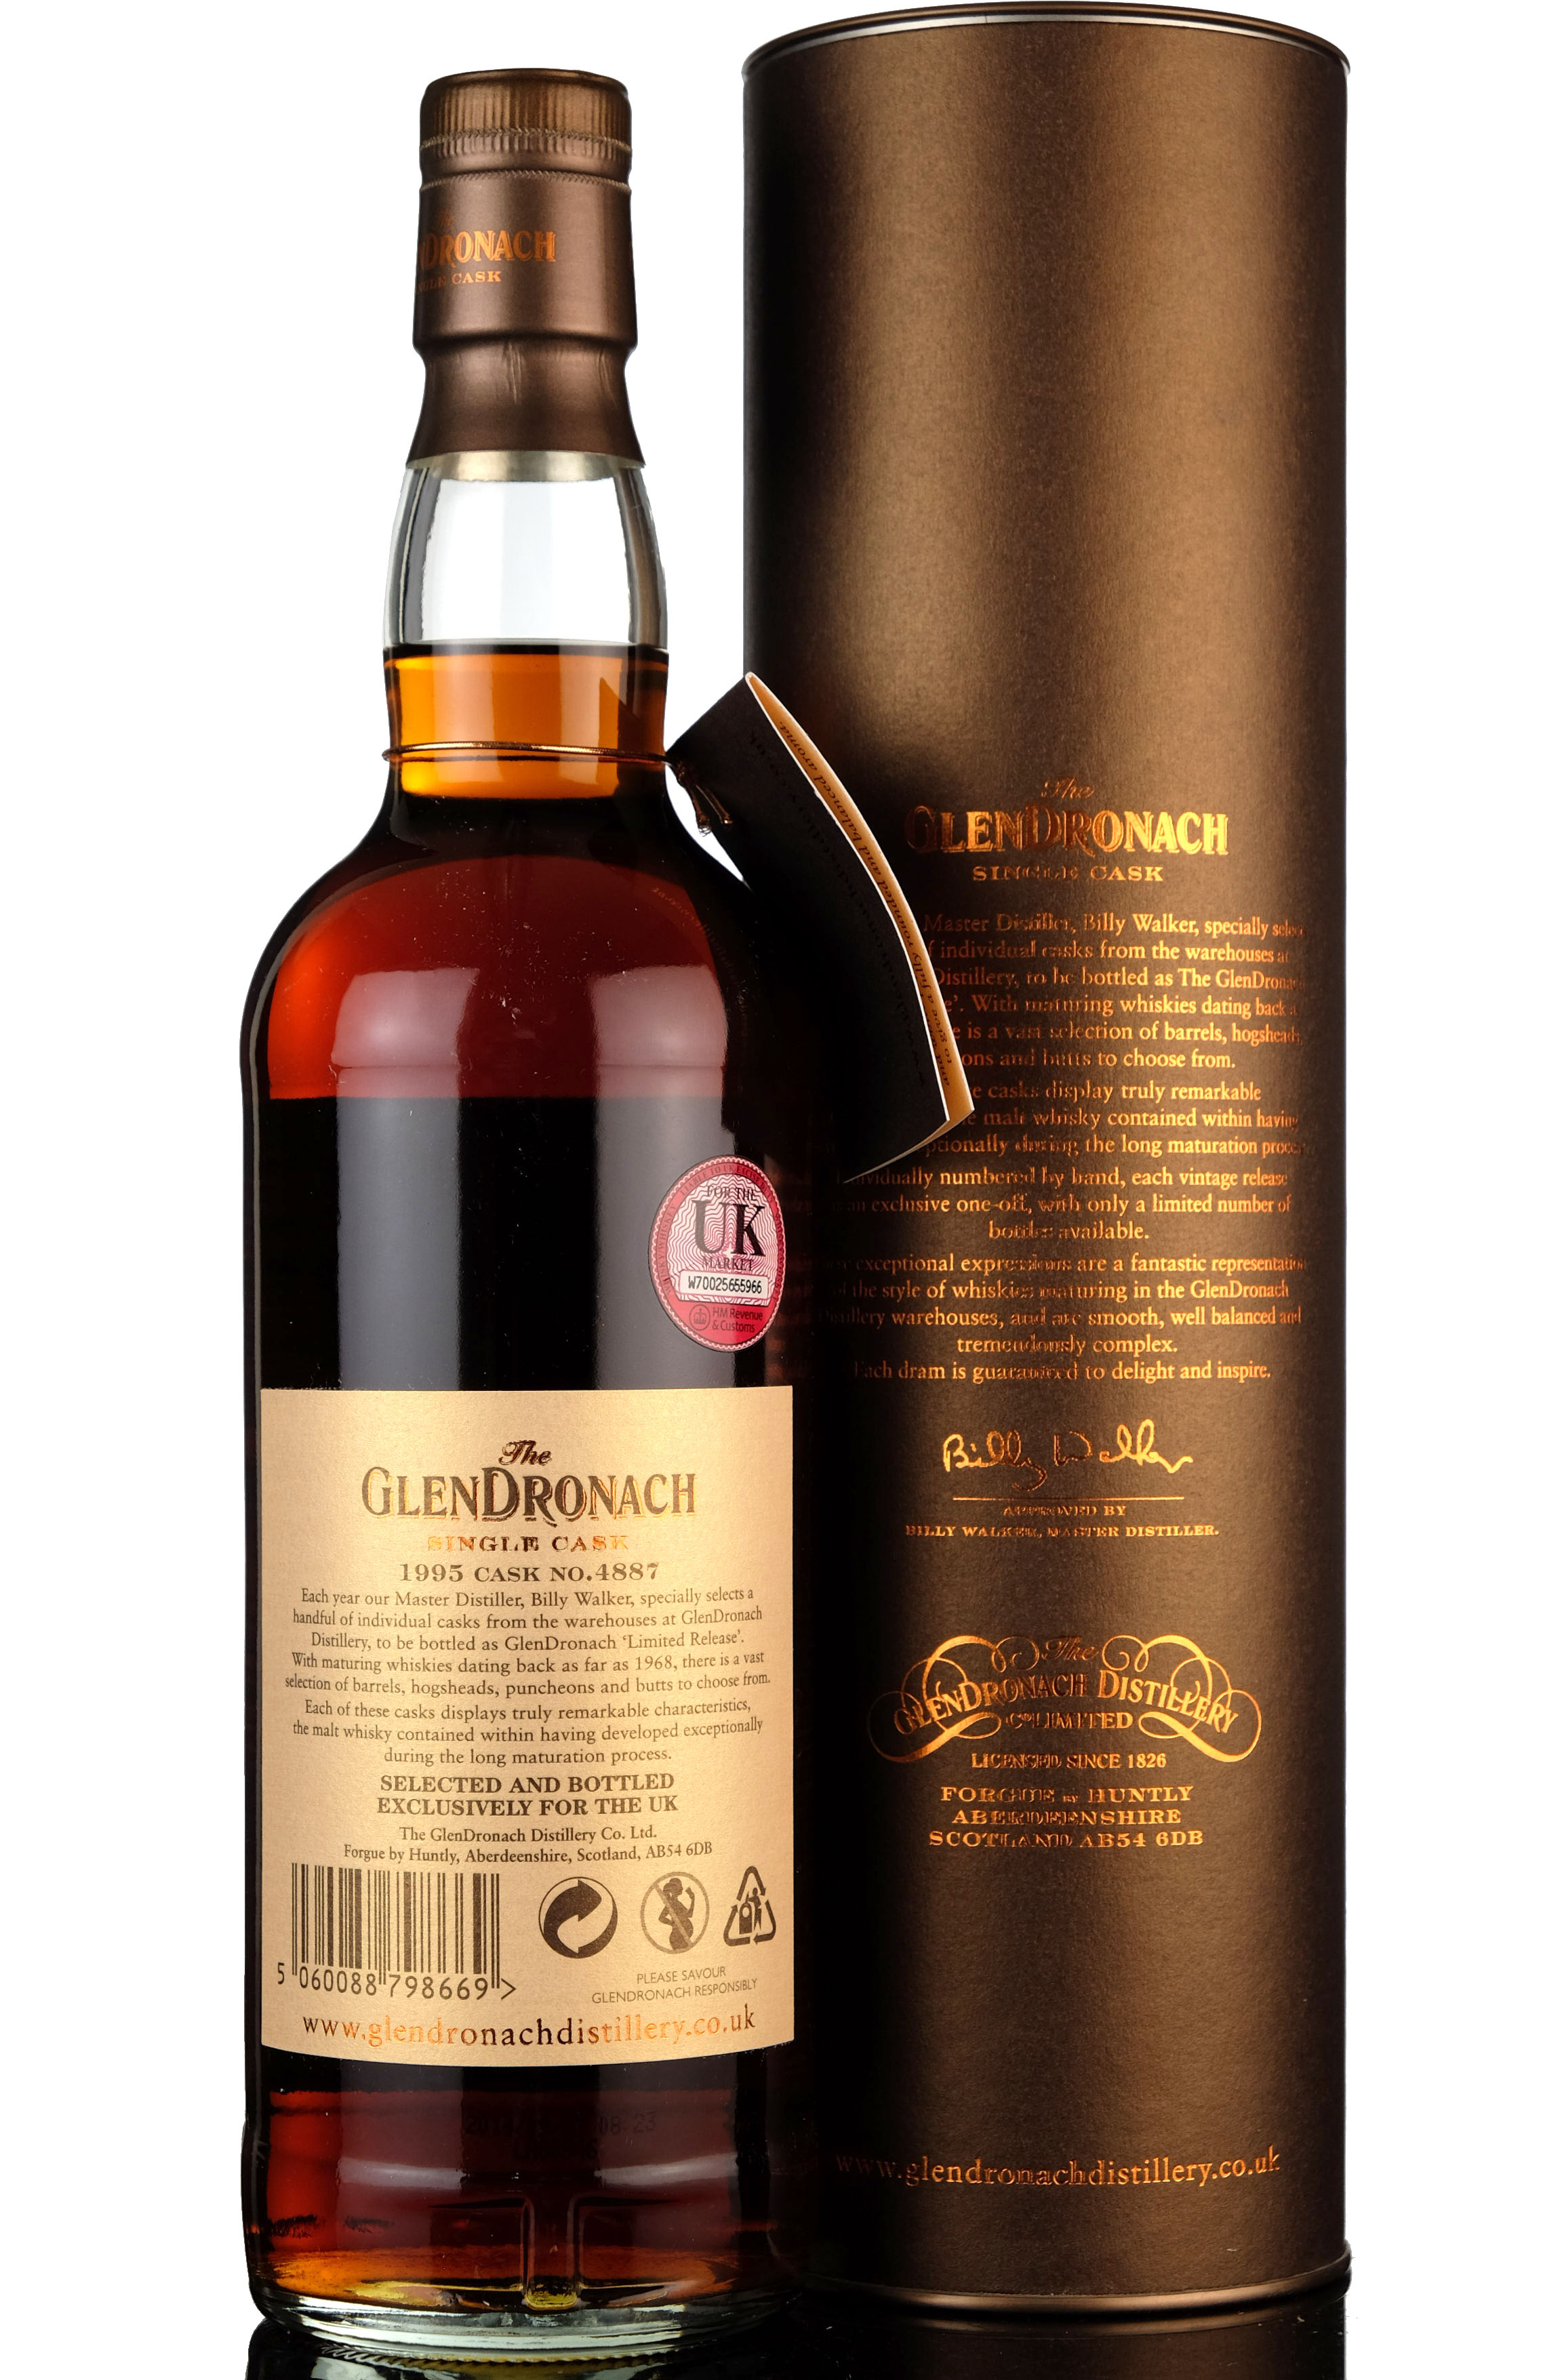 glendronach 1995-2014 - 19 year old - single cask 4887 - uk exclusive